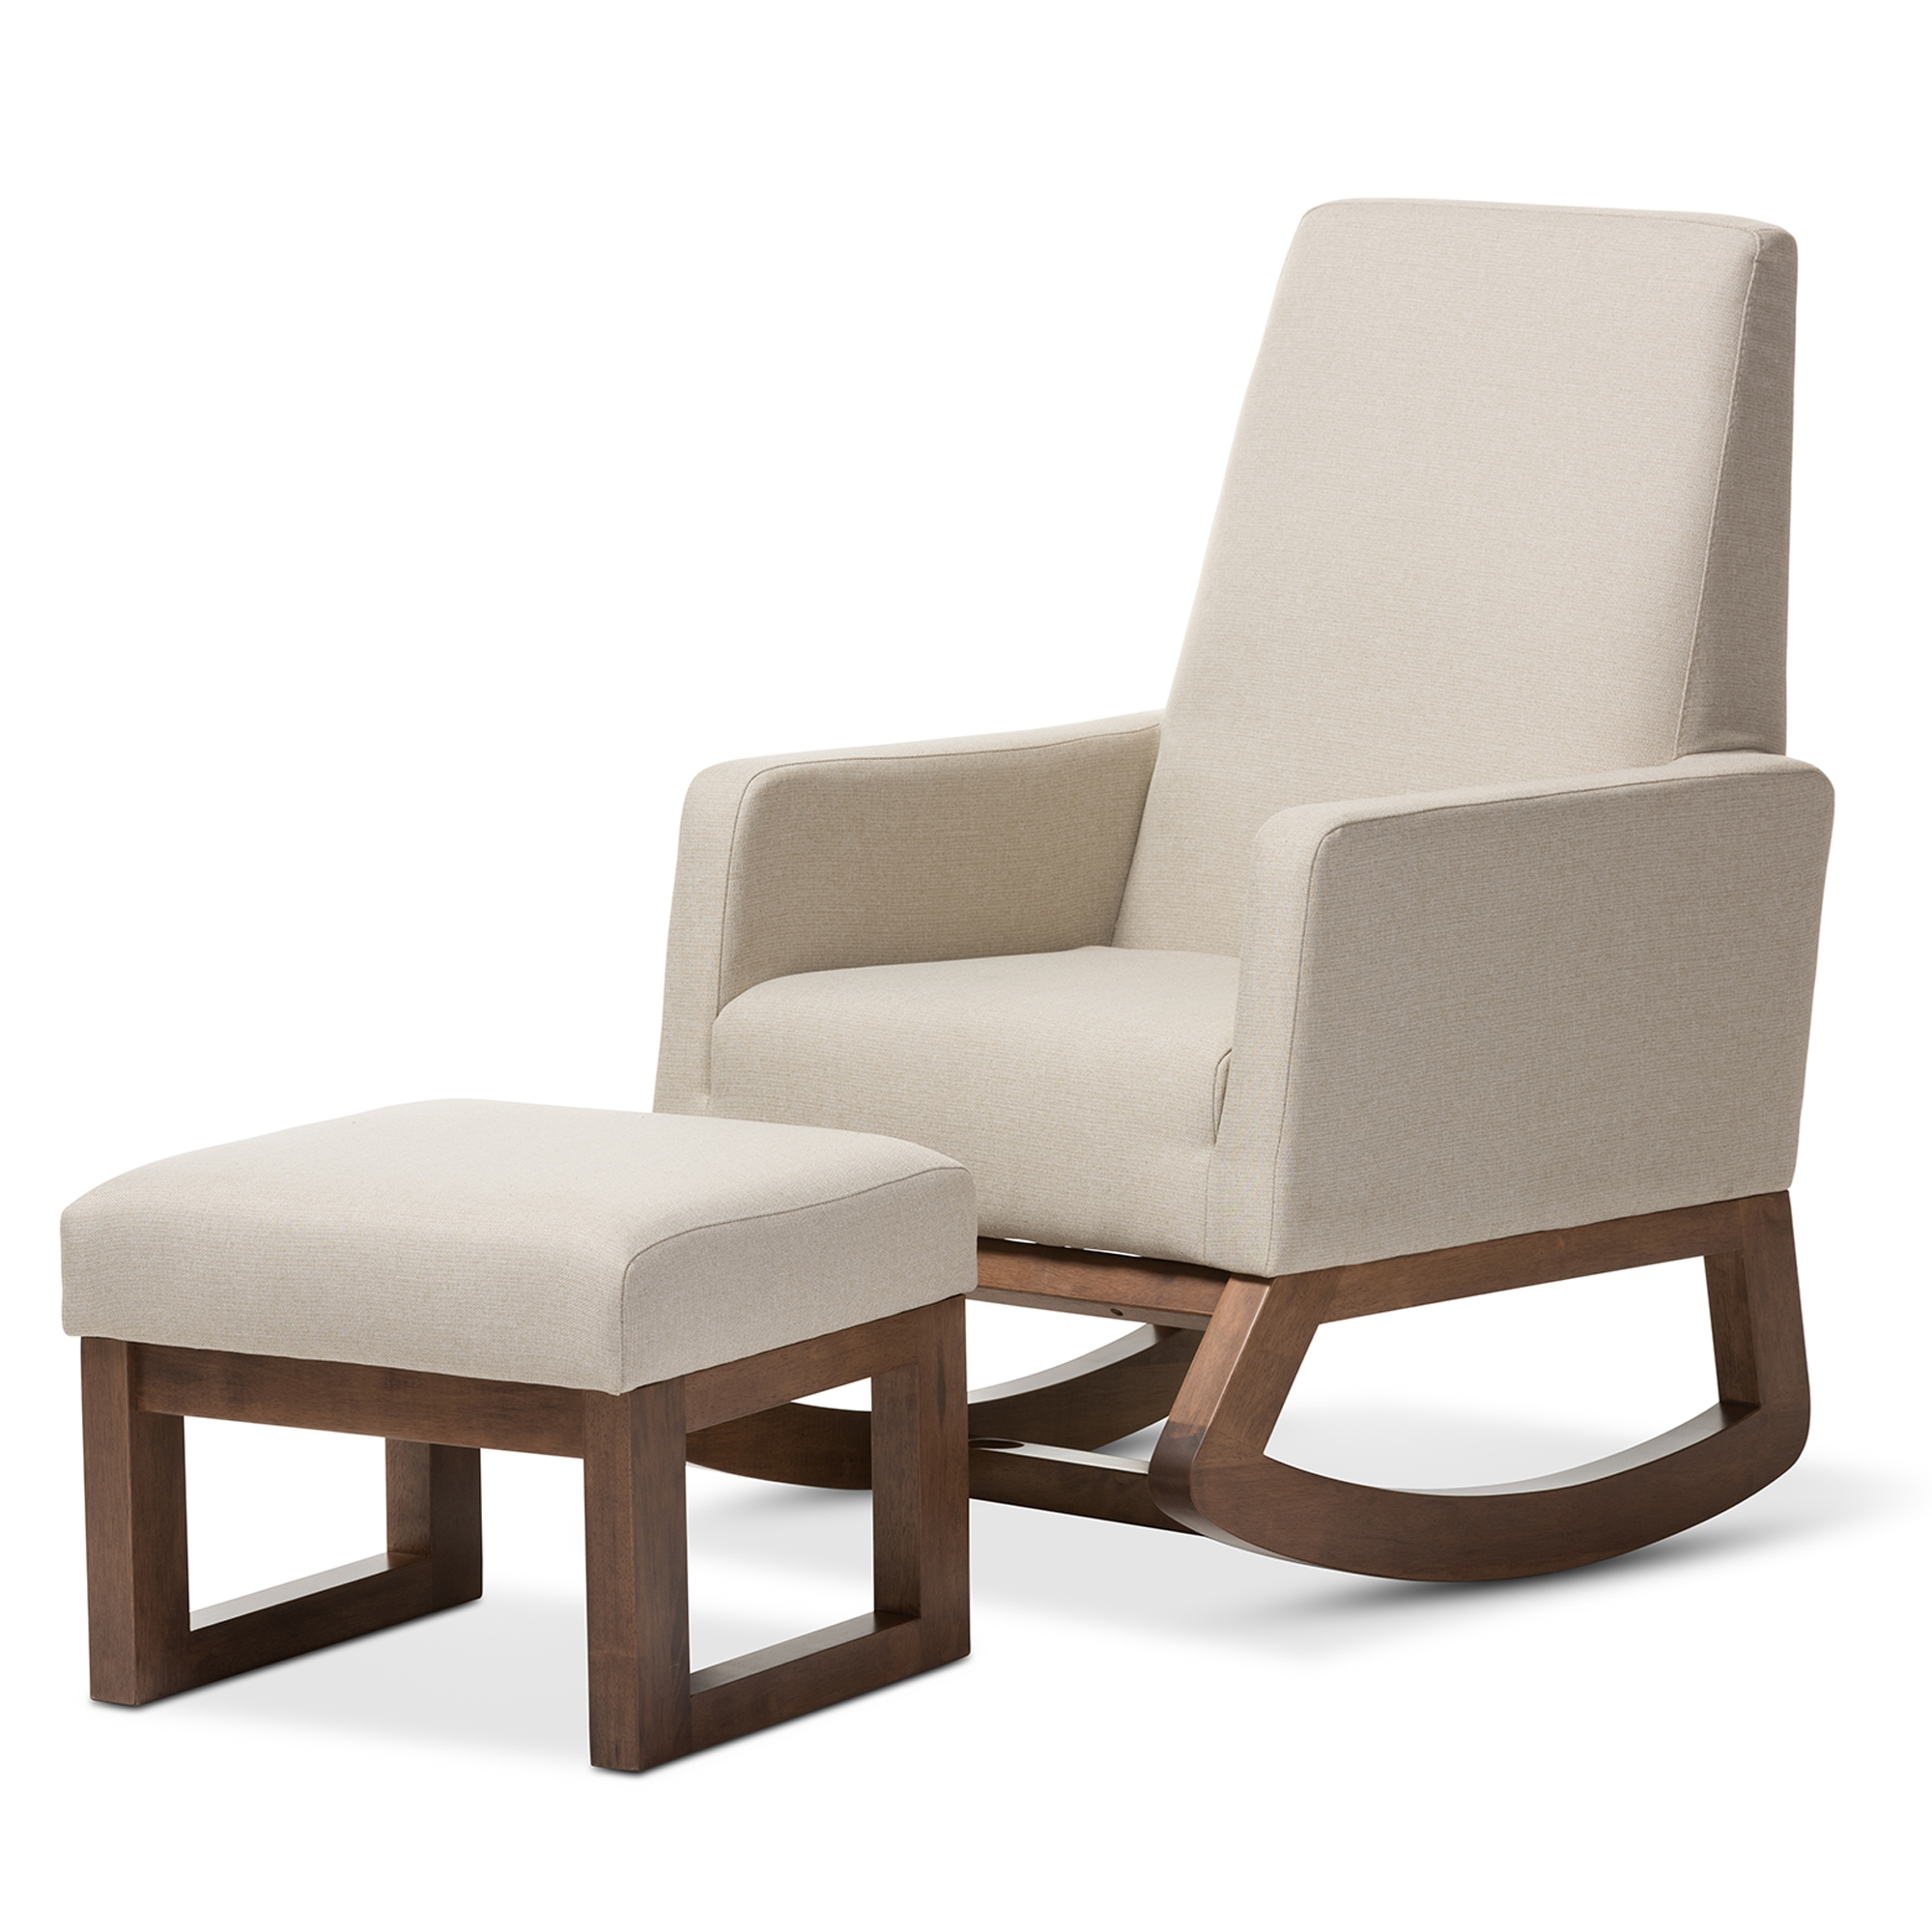 Baxton Studio Yashiya Mid Century Retro Modern Light Beige Fabric  Upholstered Rocking Chair And Ottoman Set